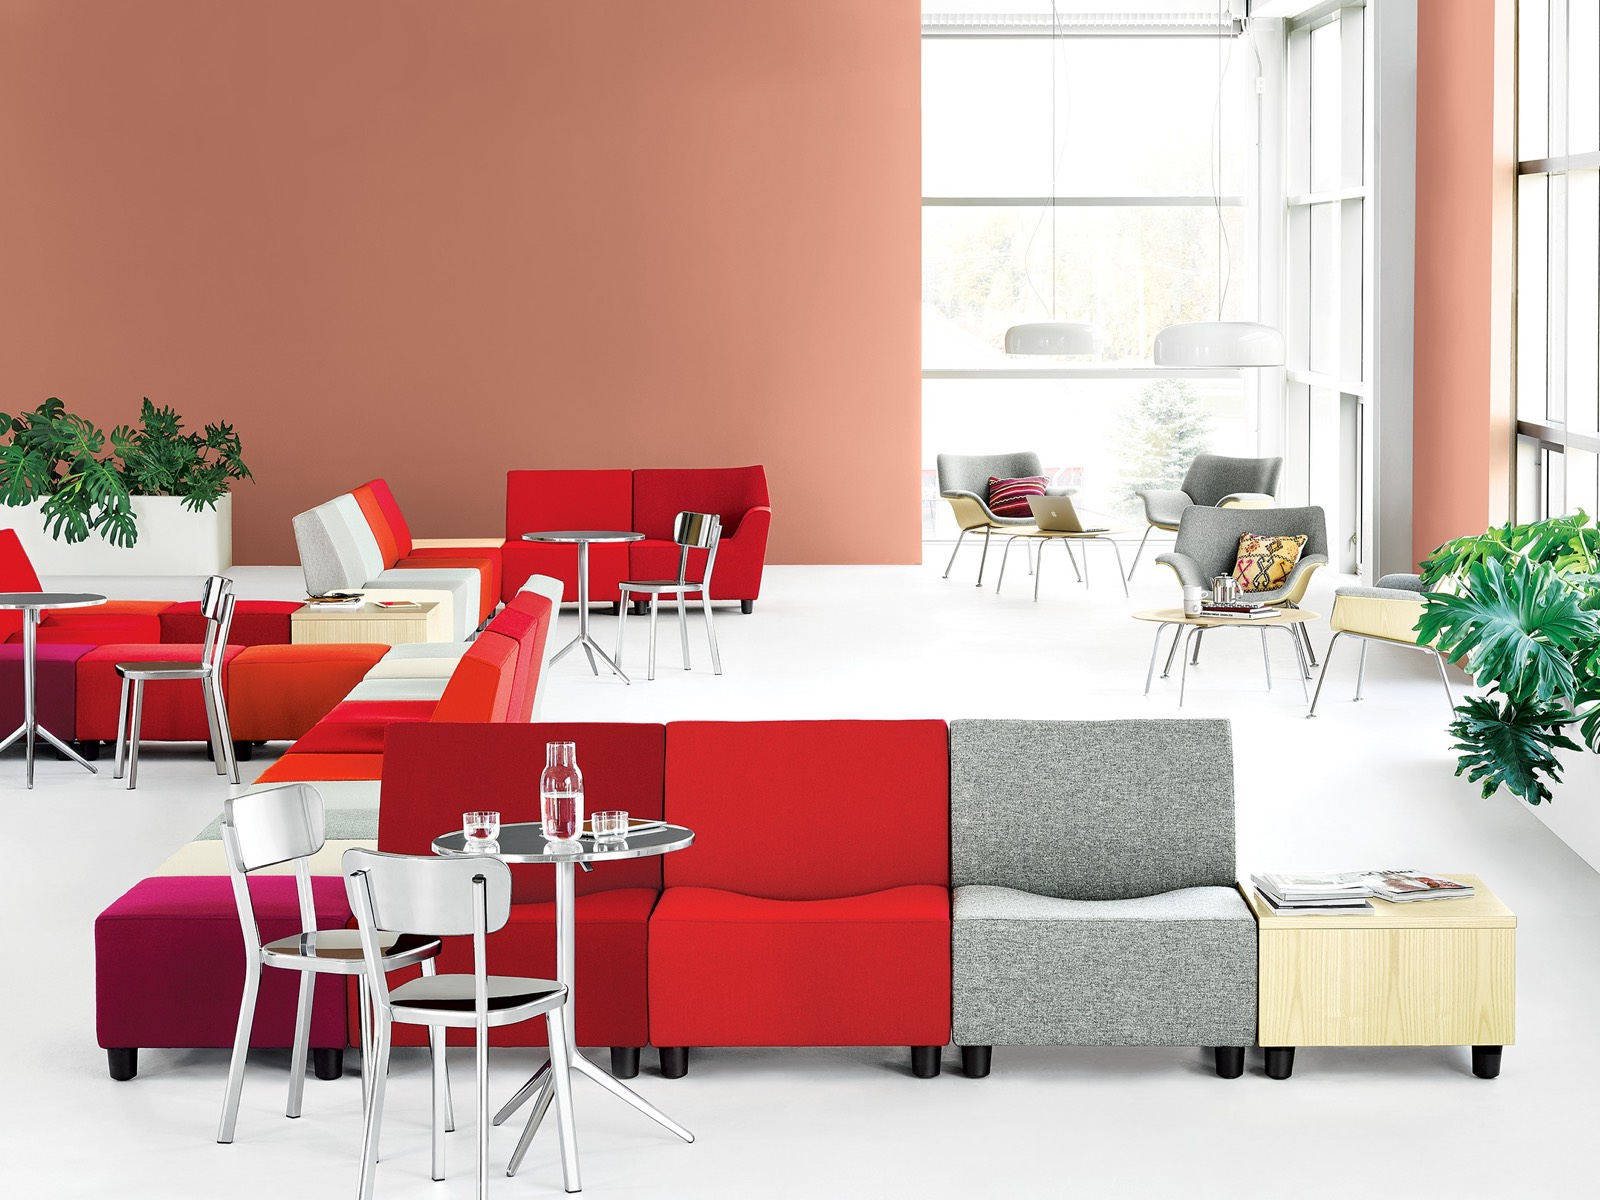 Mit Swoop Lounge Furniture, modularen Sitzelementen und Lounge Chairs